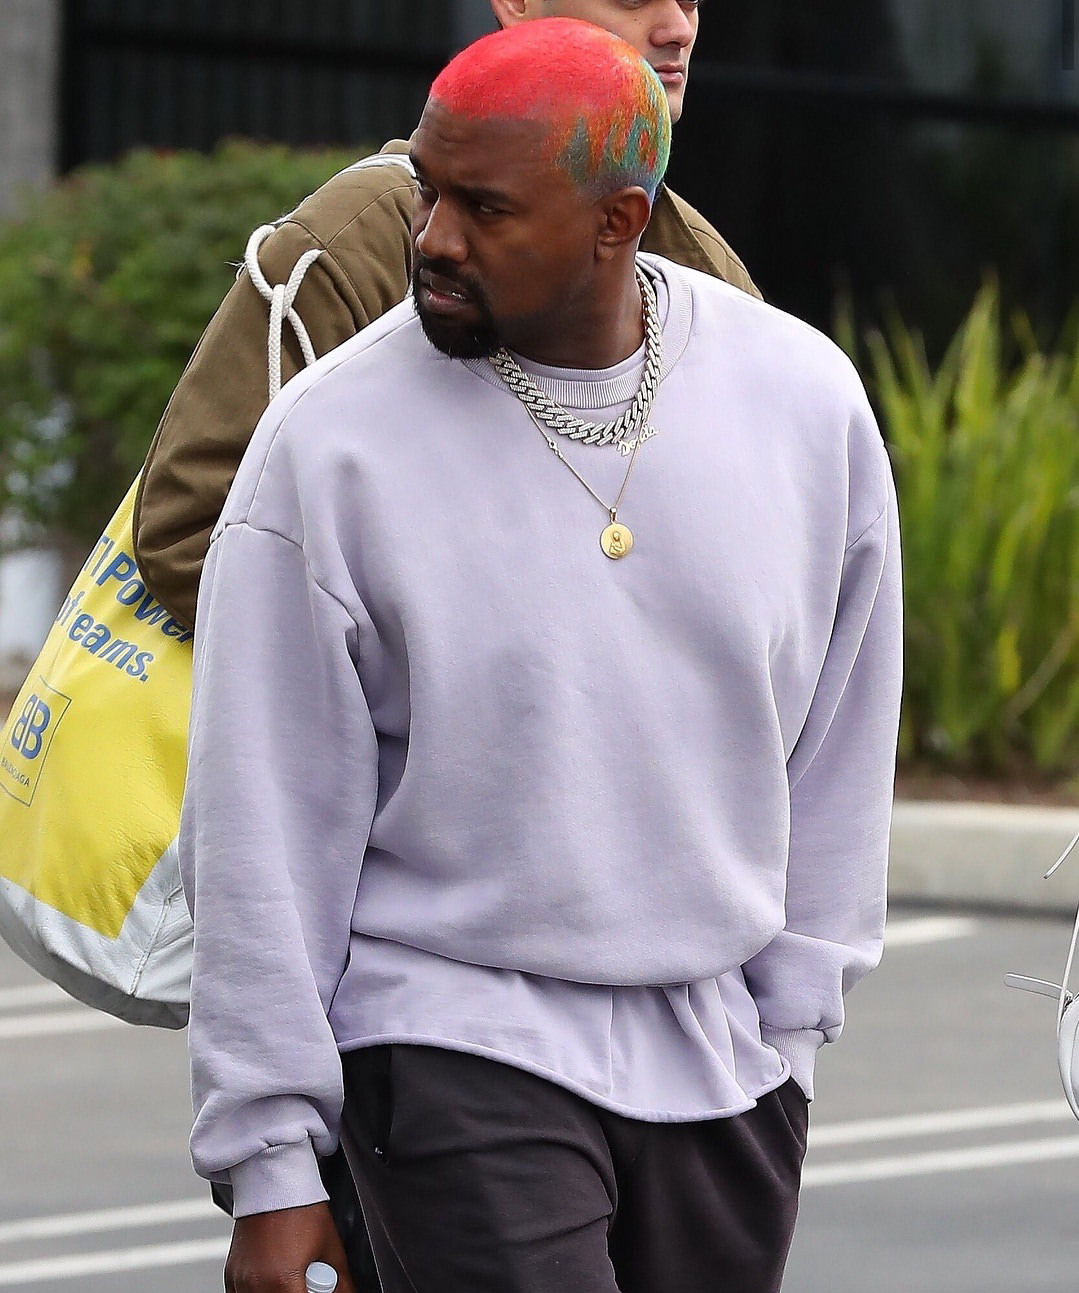 Pin By Miead Mahdavi On Buzzed Hair Dyed Hair Men Kanye West Outfits Men Hair Color